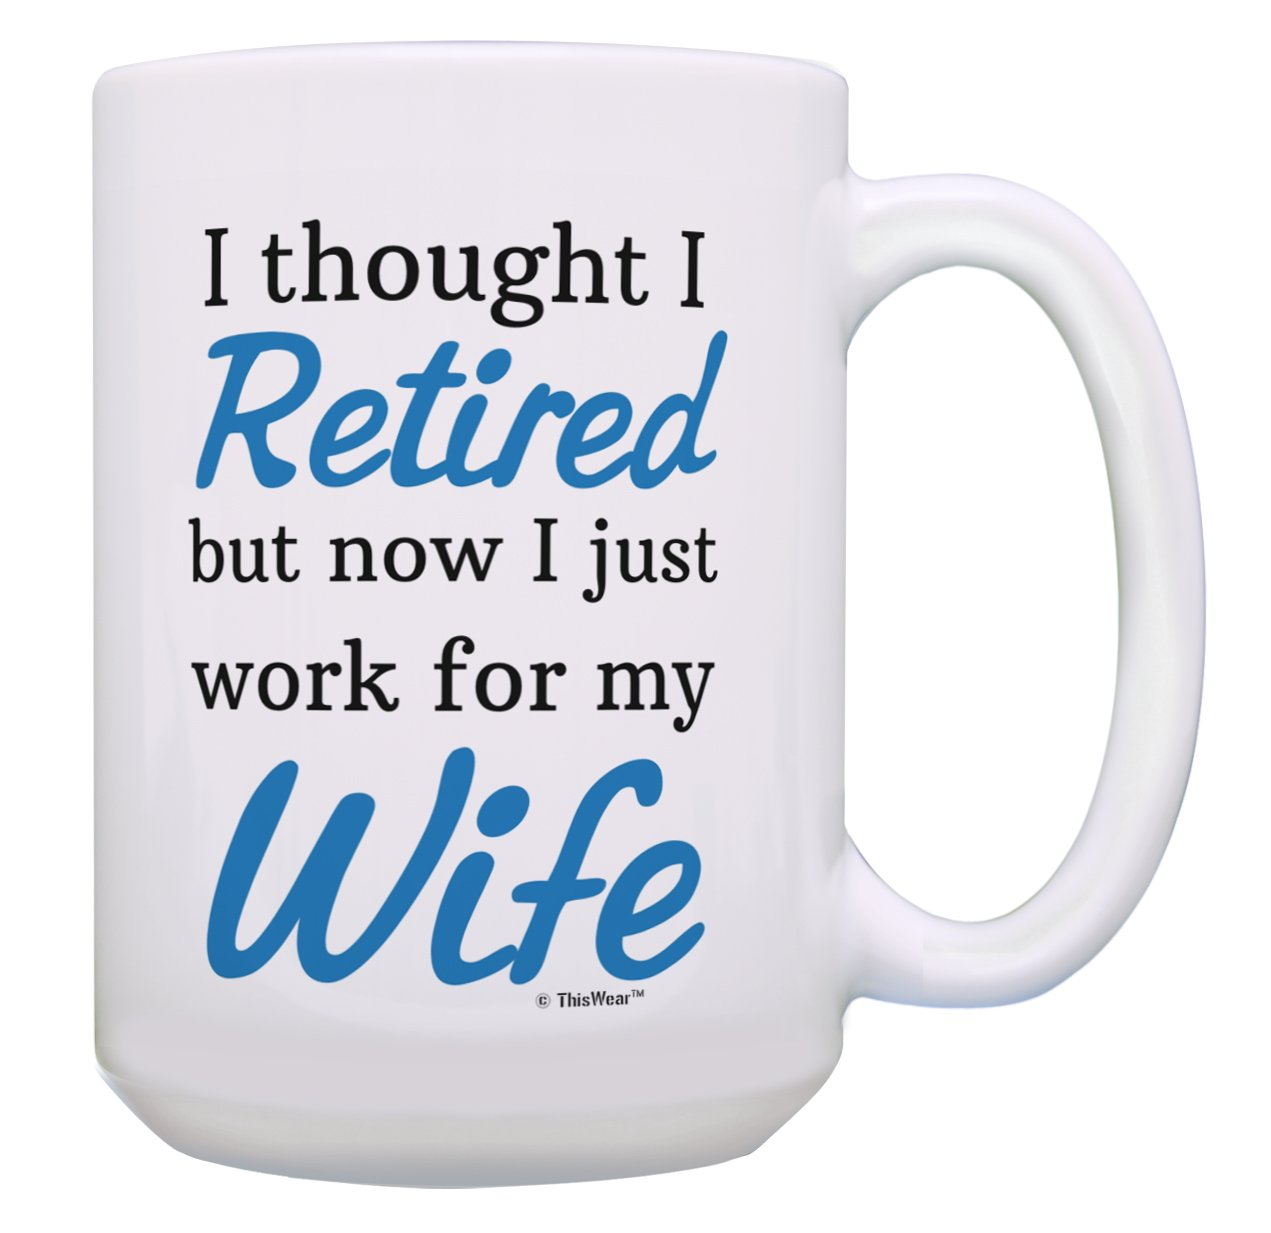 Funny Retirement Mug I Thought I Retired But Now I just Work for My Wife Retirement Gifts for Men Funny Retirement Gifts for Couples Retirement Joke Gifts 15-oz Coffee Mug Tea Cup 15 oz White A-P-S-15M-3244-01